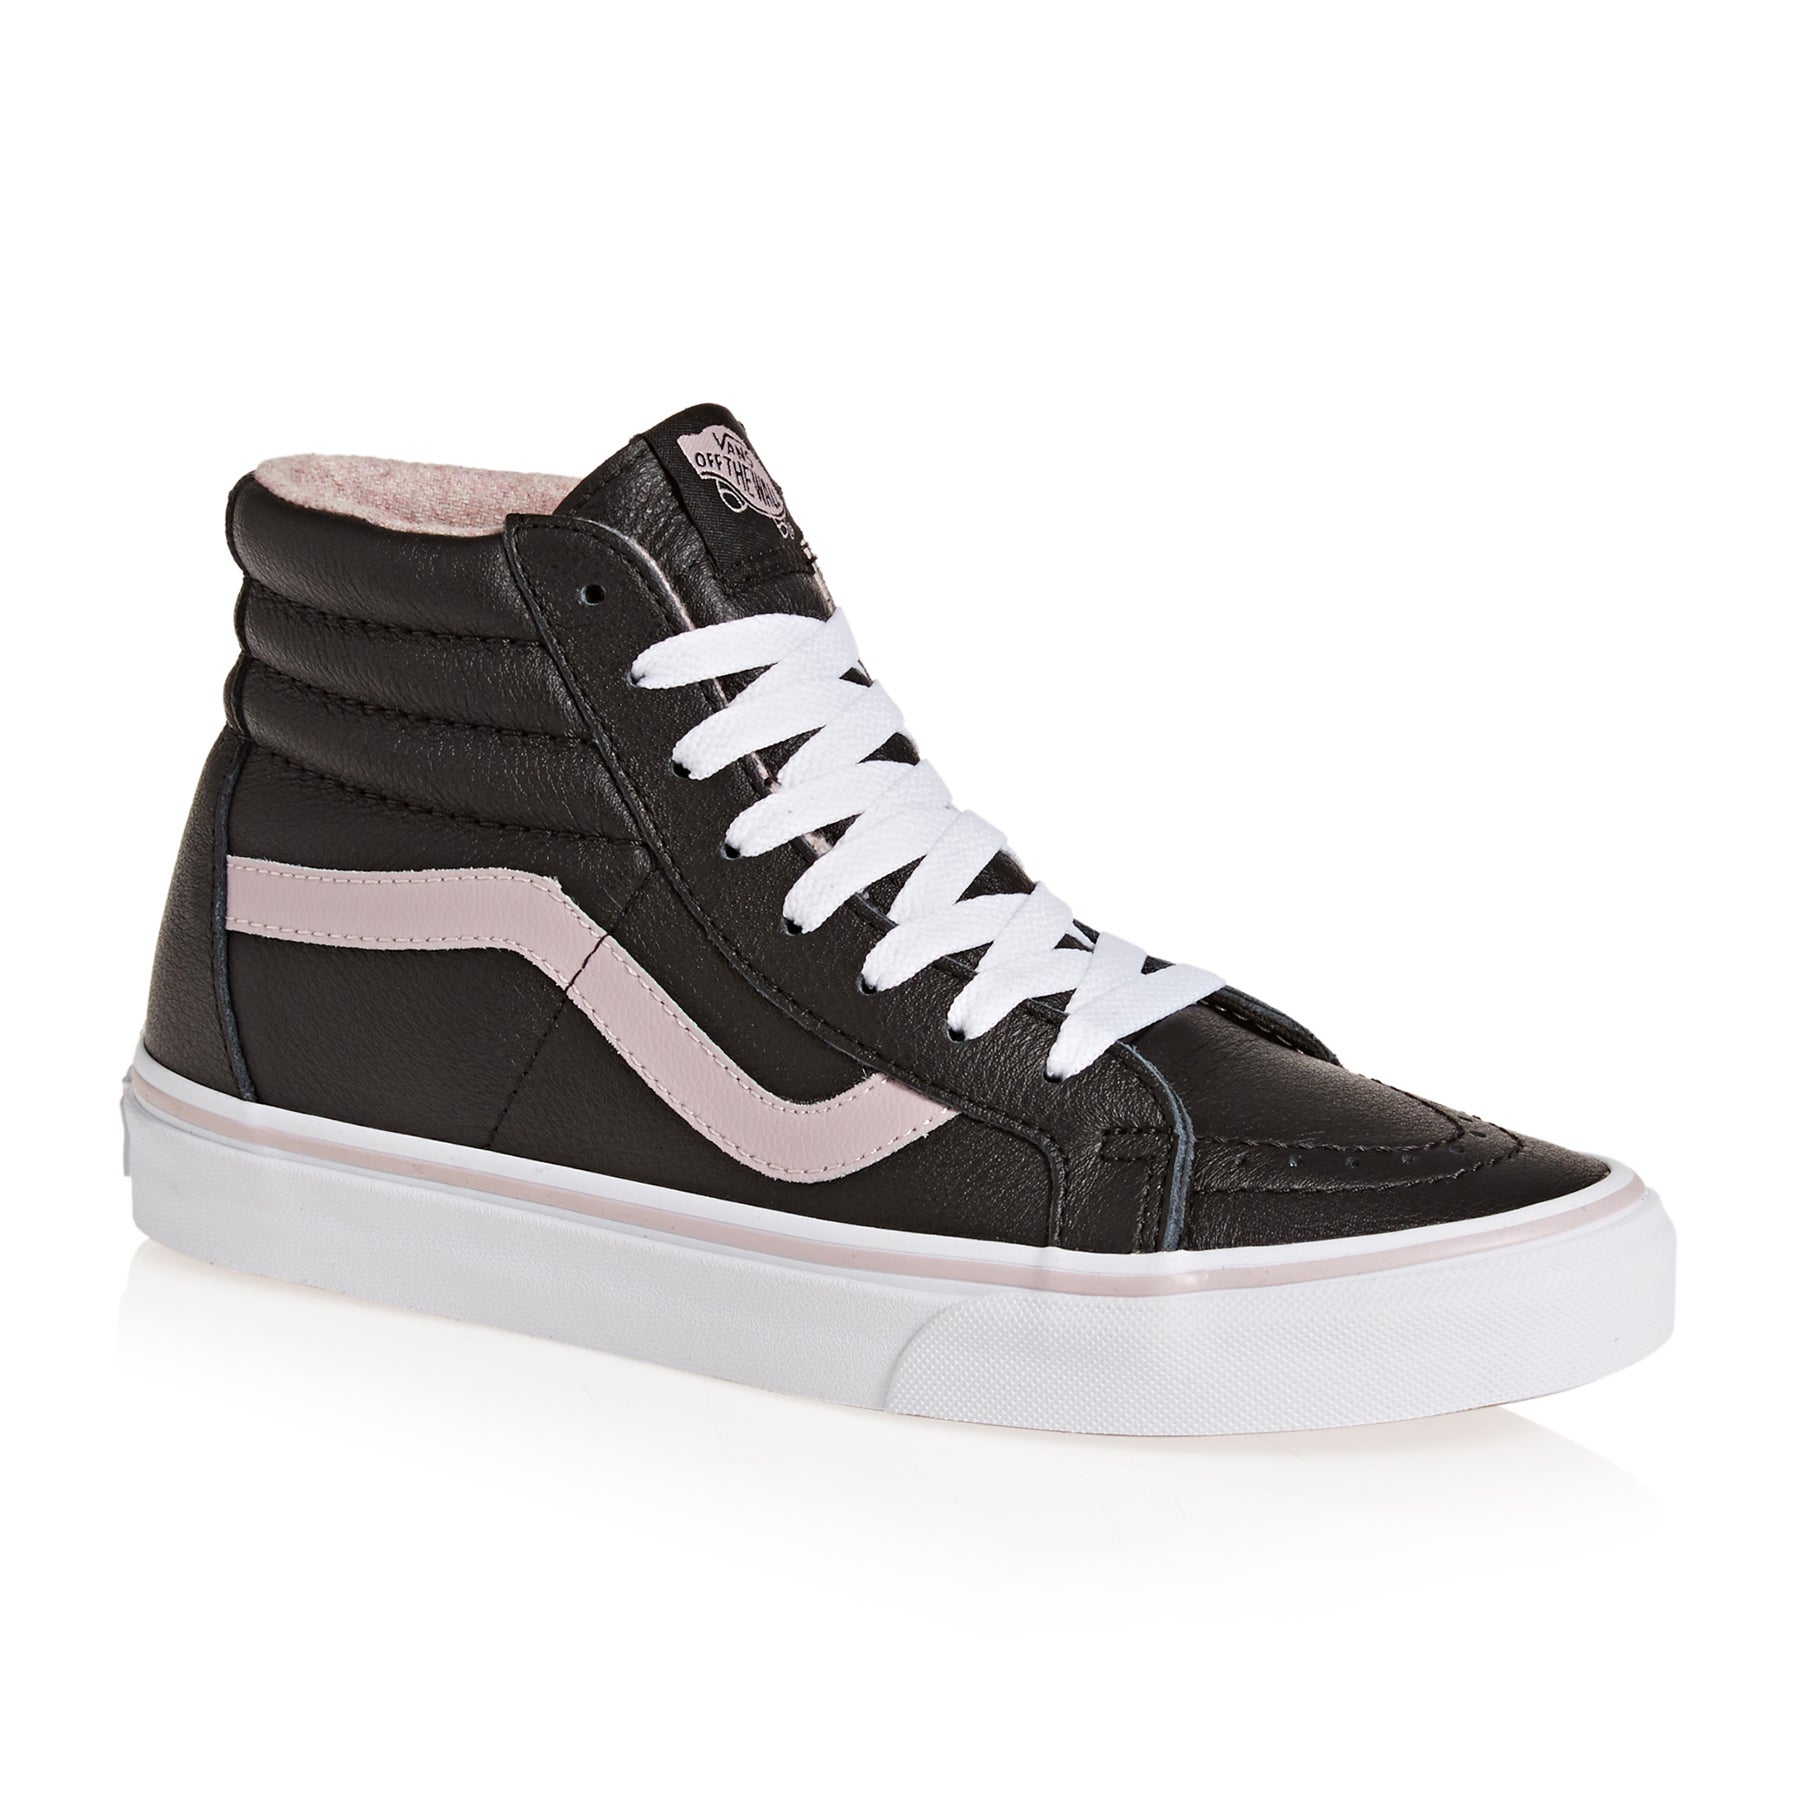 Vans Sk8 Hi Reissue Womens Shoes - Leather Flannel   Violet Ice True White